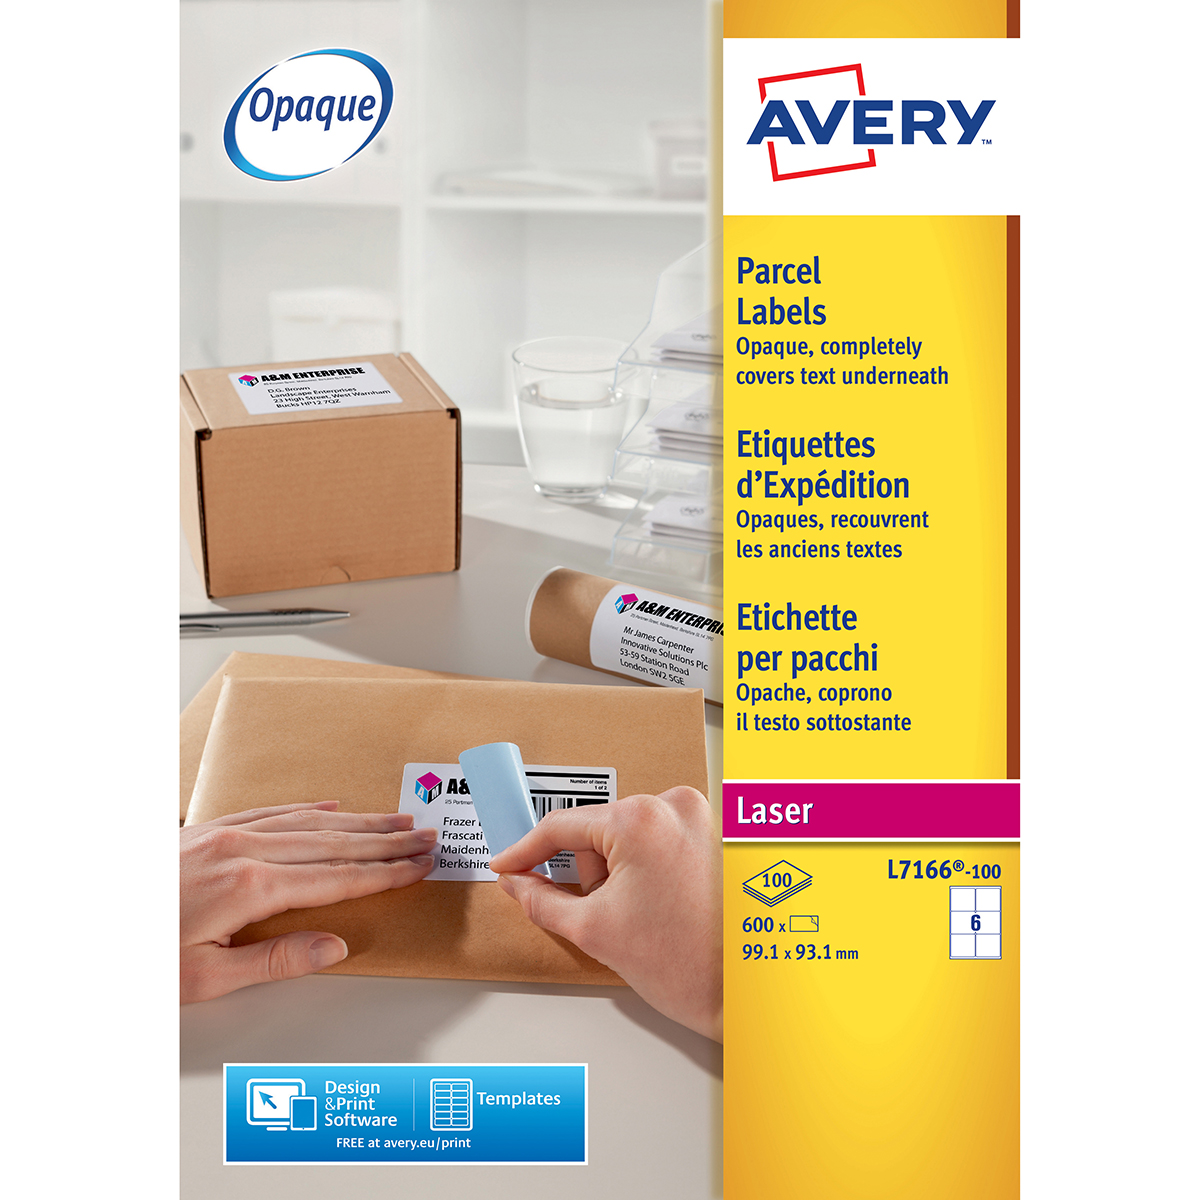 Avery L7166-100 Parcel Labels 100 sheets - 6 Labels per Sheet